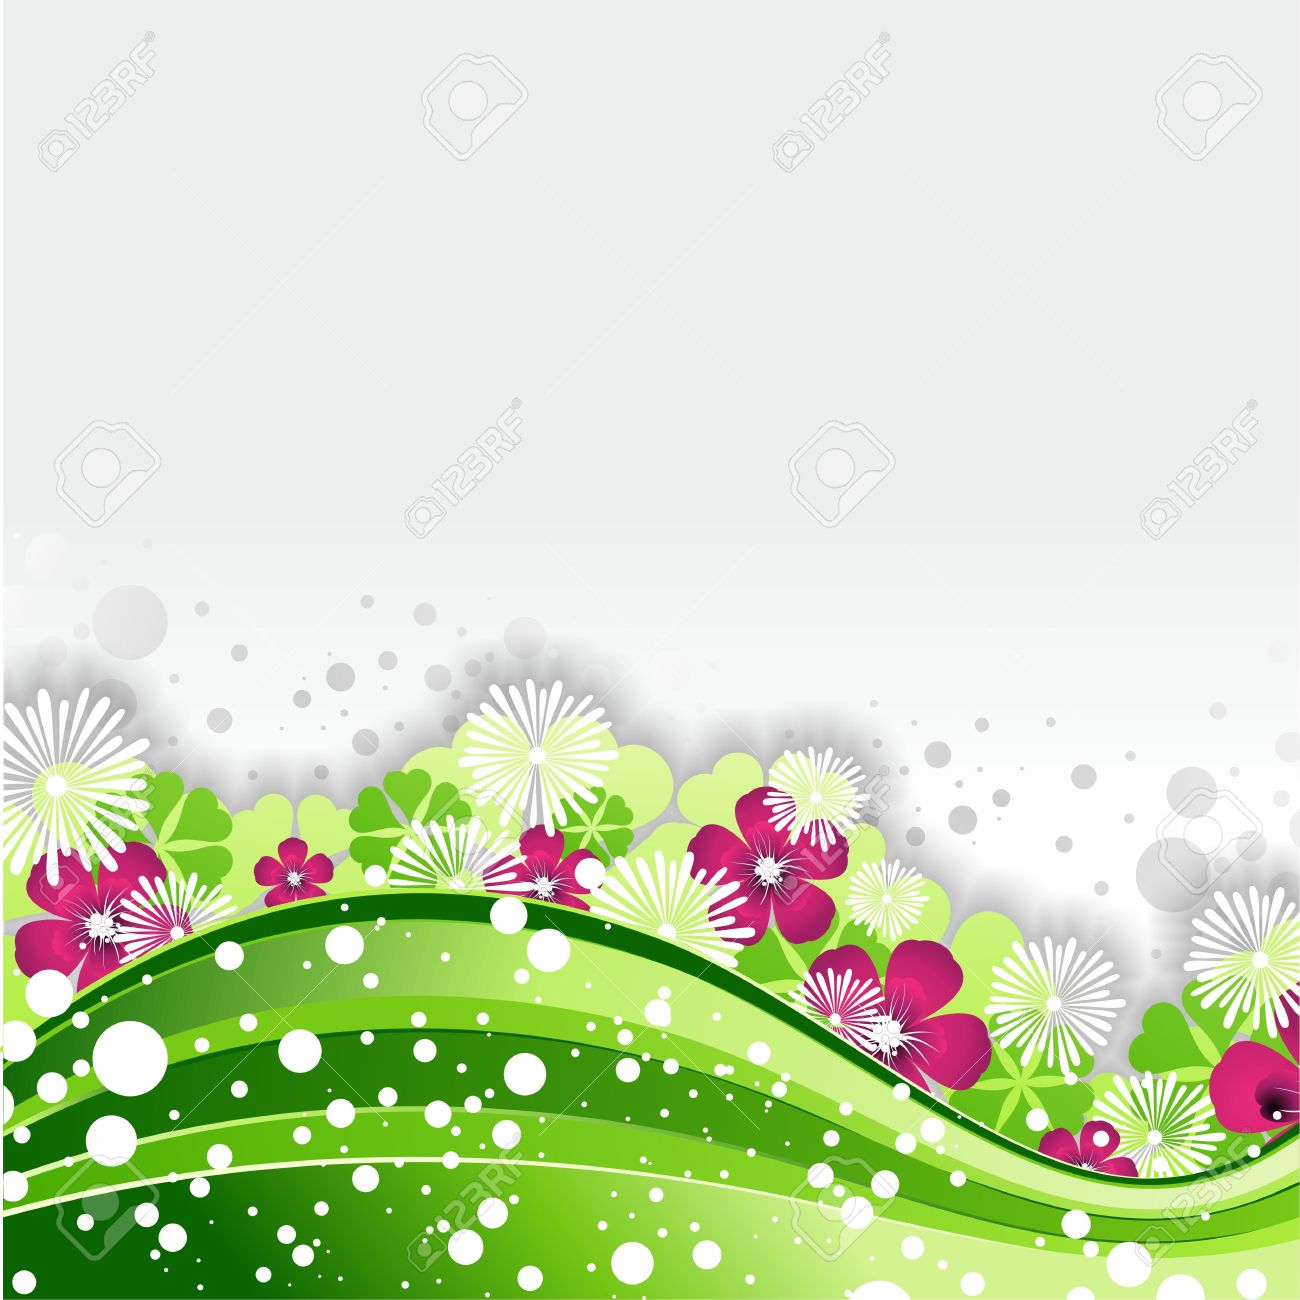 green nature wave design background royalty free cliparts vectors